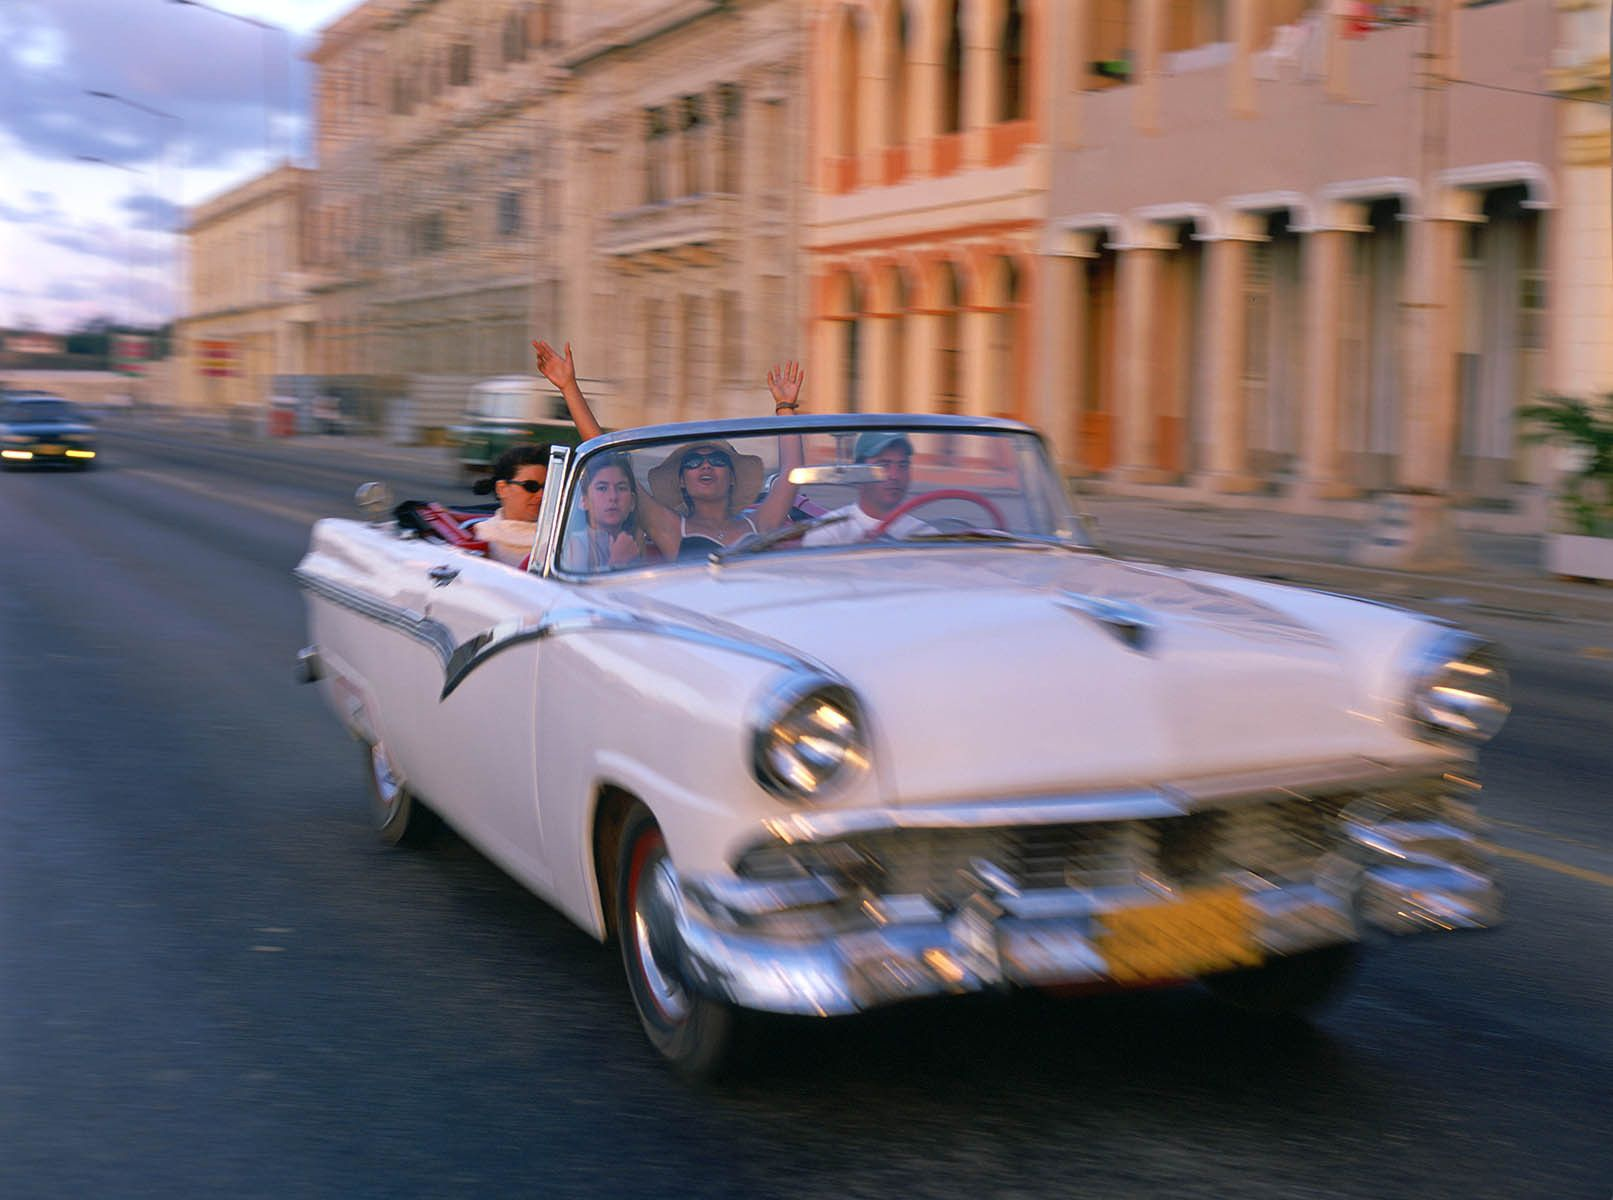 Cruising down the Malecon, Havana, Cuba